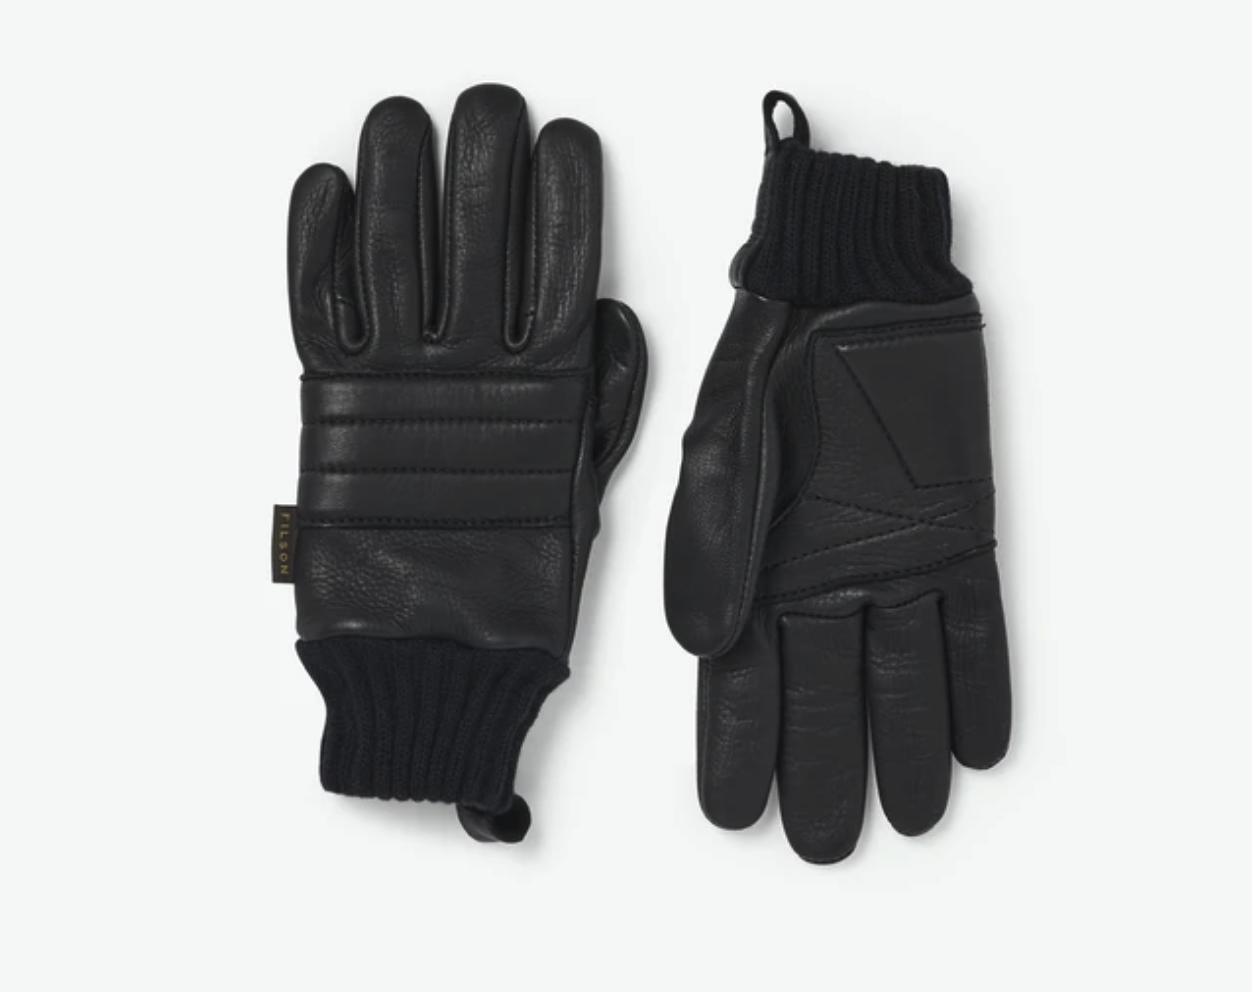 A motorcycle collection could not be complete without a pair of good leather gloves, of course. Filson's Alcan Leather Gloves are built with premium deerskin that is durable, soft and pliable. These gloves boast padded knuckles and palms, providing outstanding protection for your ride. Not only are these gloves durable and effective, but Filson partnered with another local Washington company, the JRC Glove Company. JRC was founded back in 1897, the same year that Filson began. Together, these two companies have kept their promise of high quality and tradition, while evolving with the times to create some of the best products today's sports could ask for. - These gloves retail for $165 and while that seems expensive for a pair of gloves, you cannot beat the quality and durability of this leather. These gloves will quickly become your favorite pair and will last many, many years.